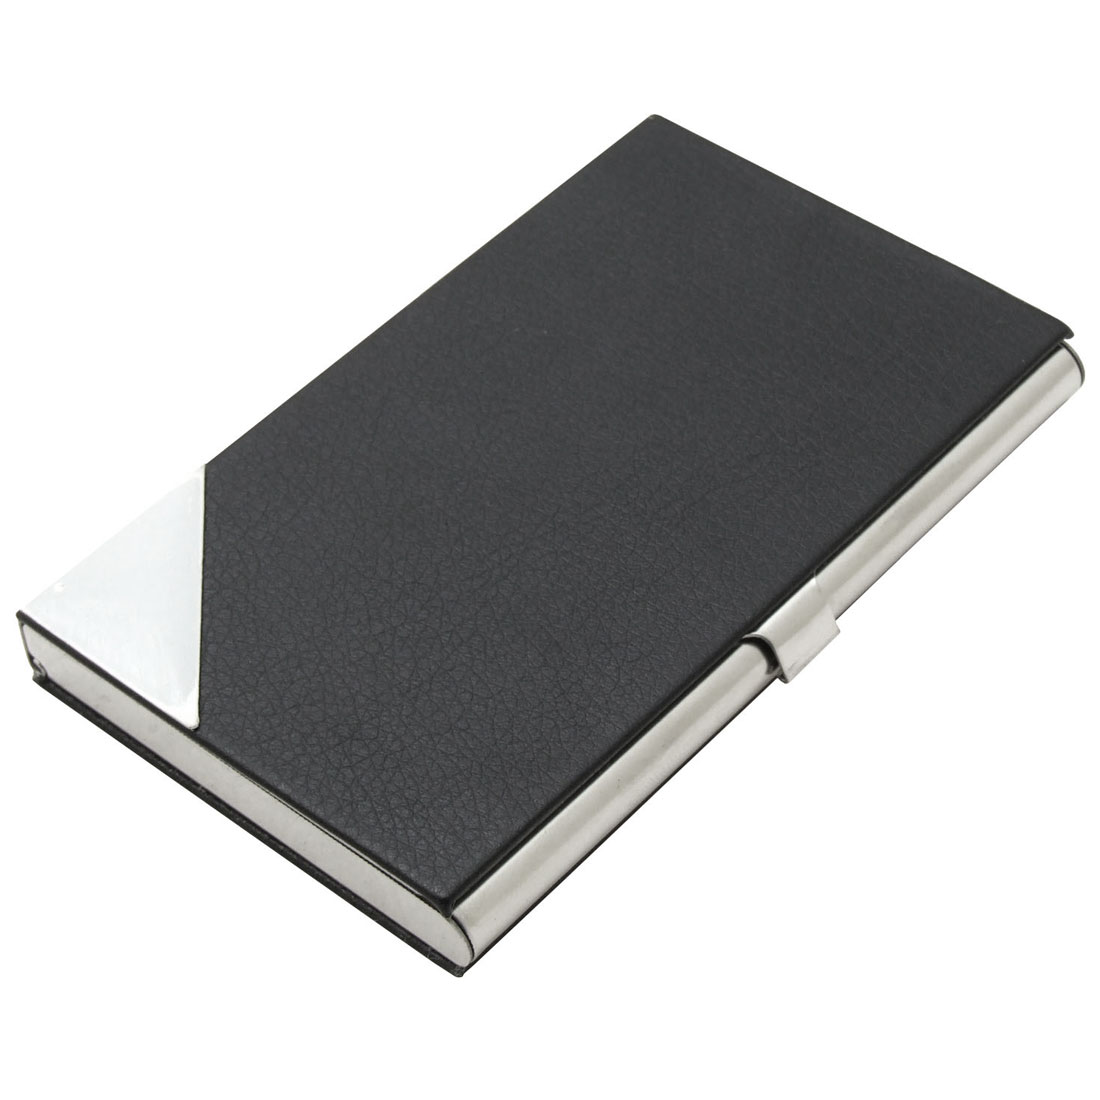 Black Coated Leather Business Cards / Credit Cards Holder